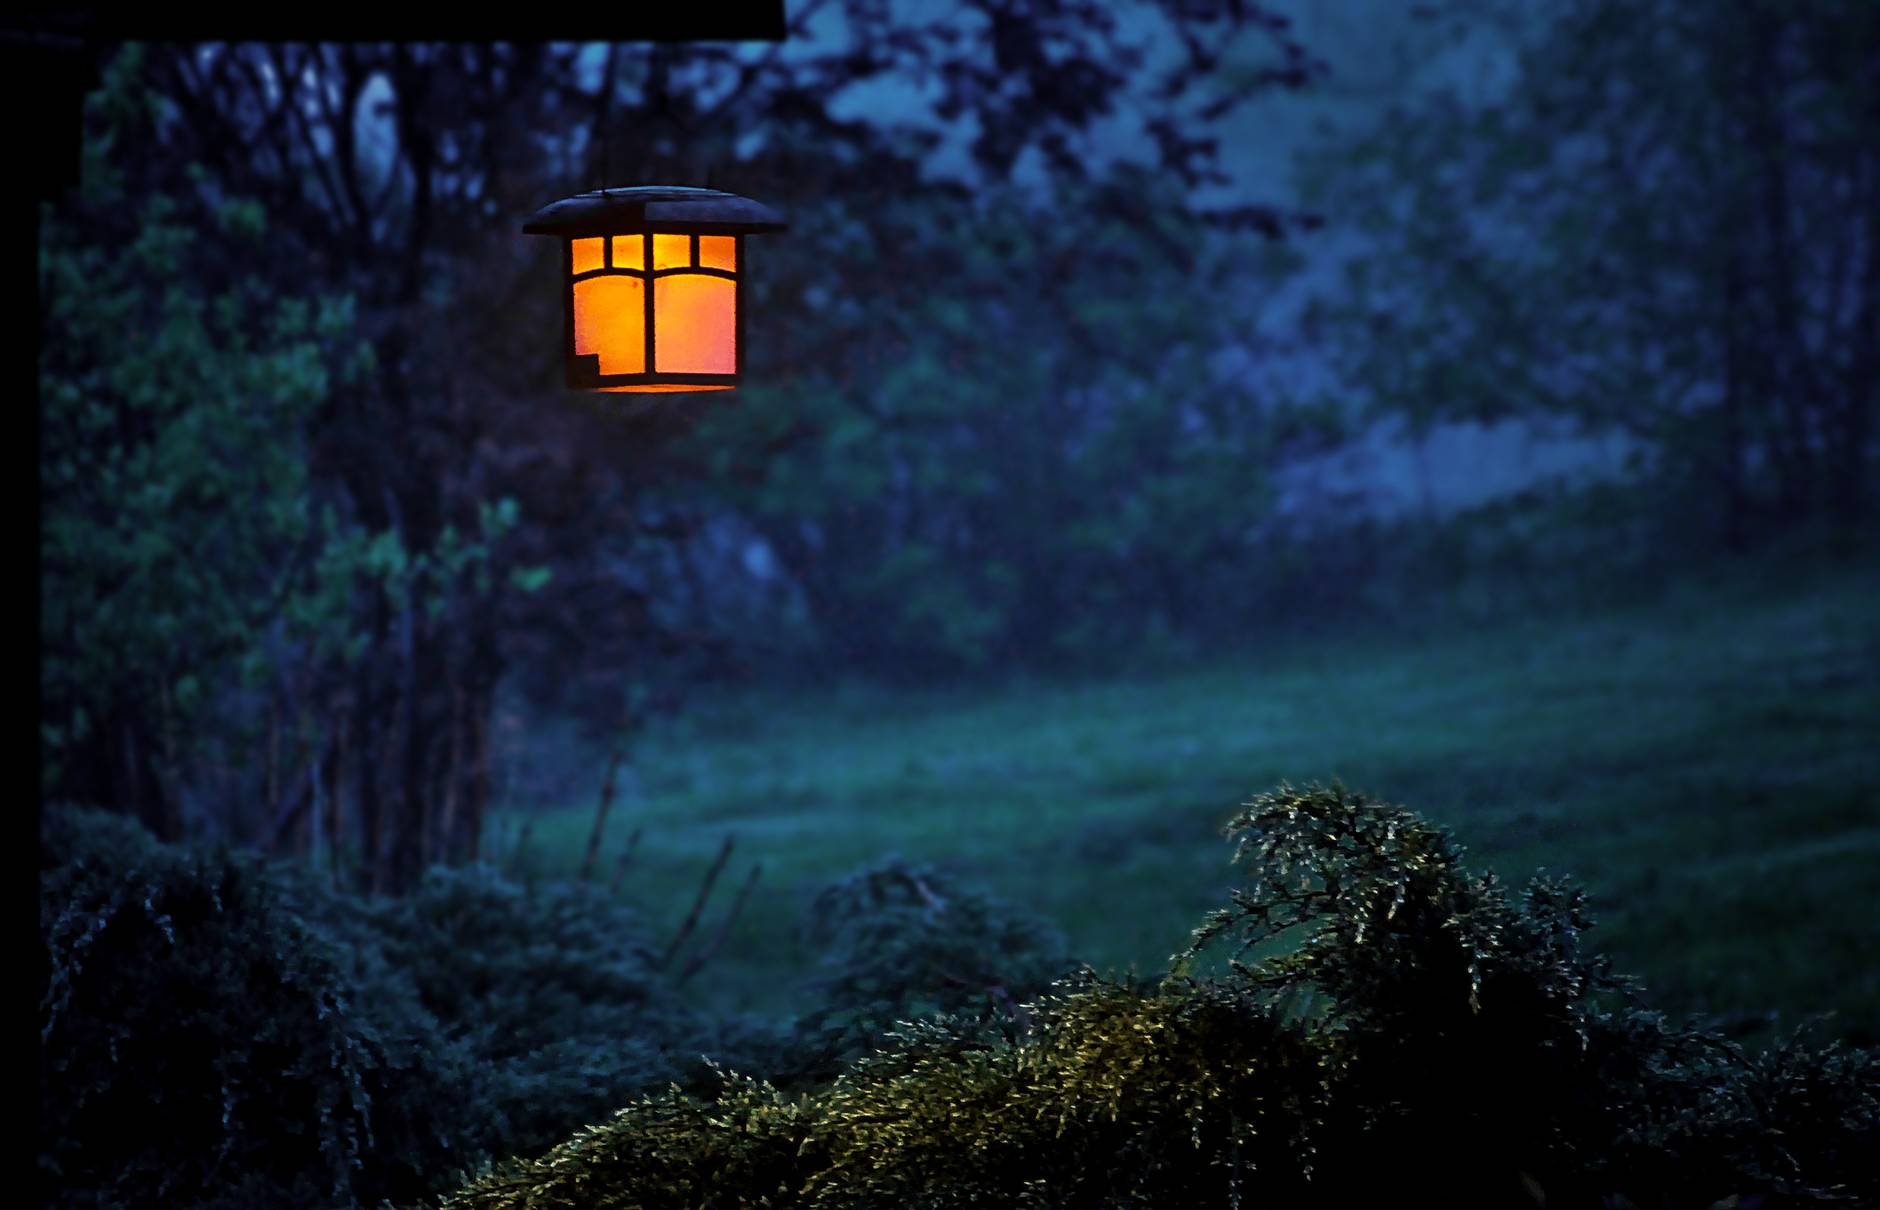 Lantern in the woods